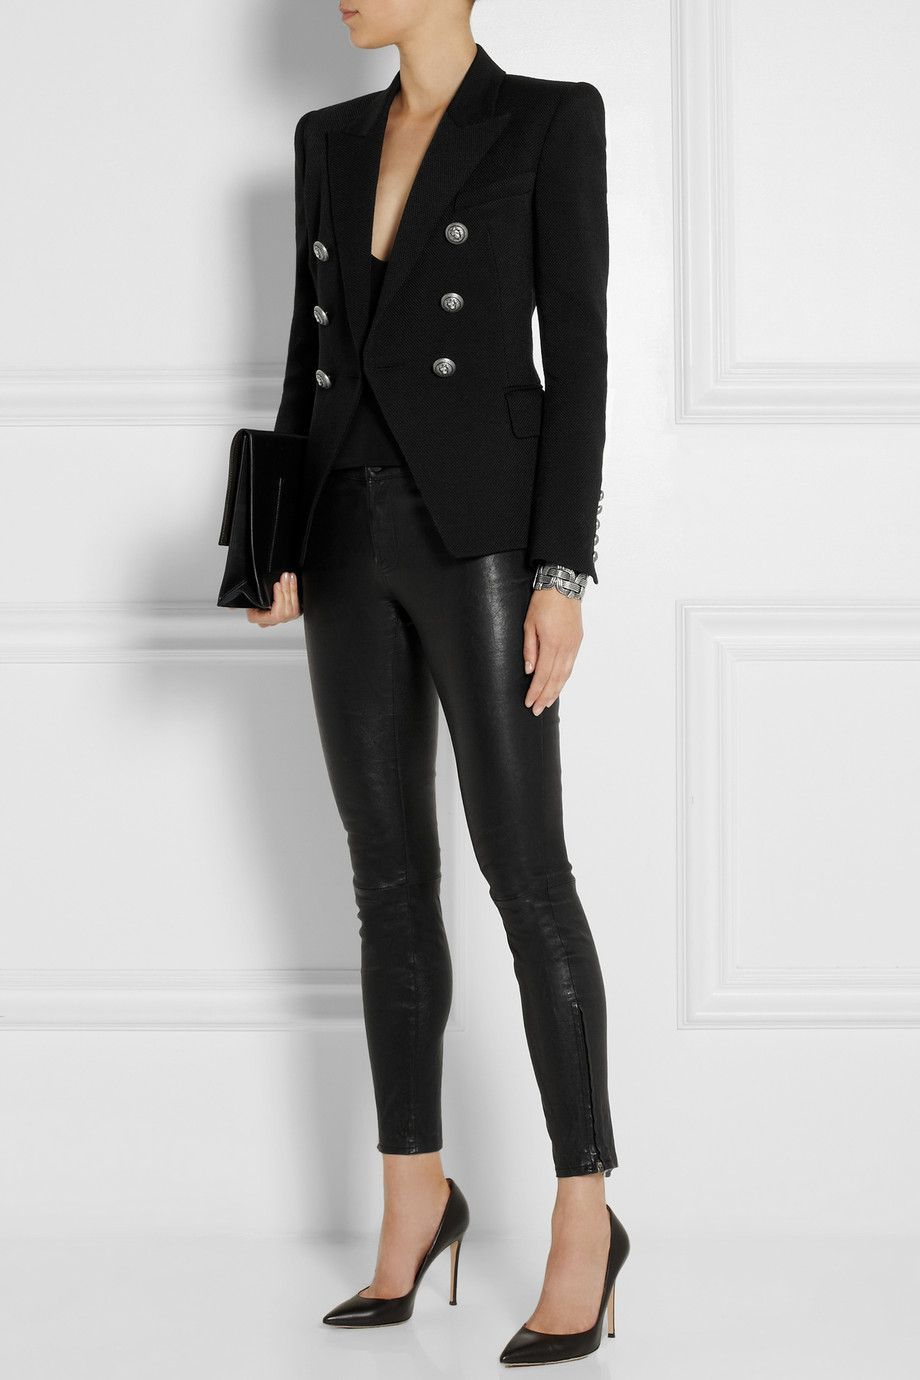 292d6b92 Image result for balmain wool double-breasted blazer street style blogger